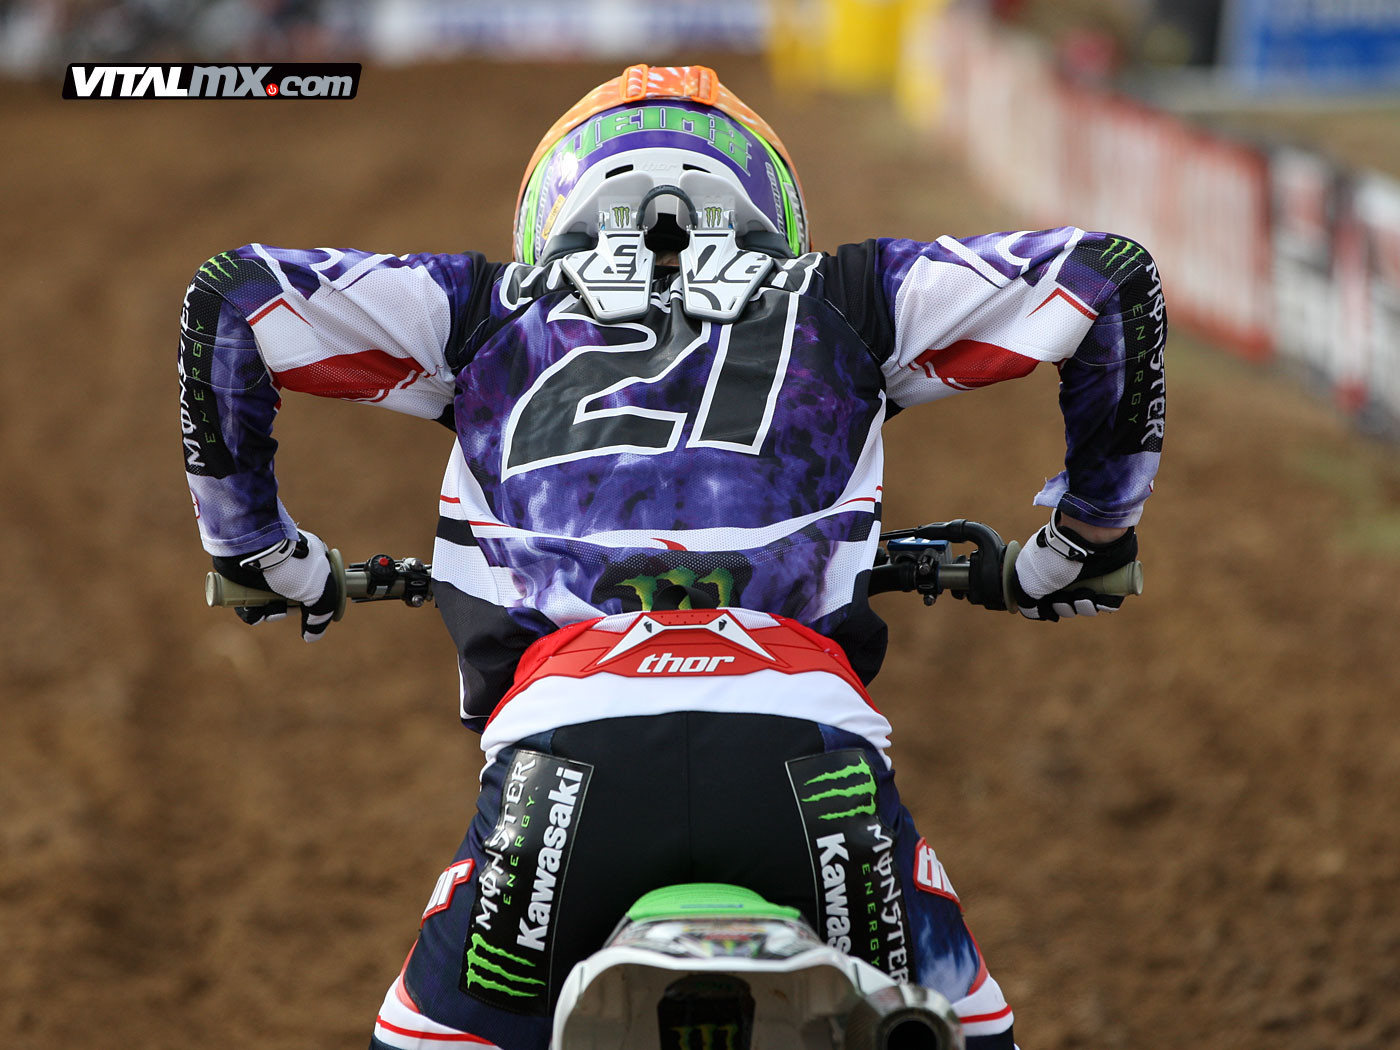 Jake Weimer - Pic o' The Day: Jake Weimer - Motocross Pictures - Vital MX